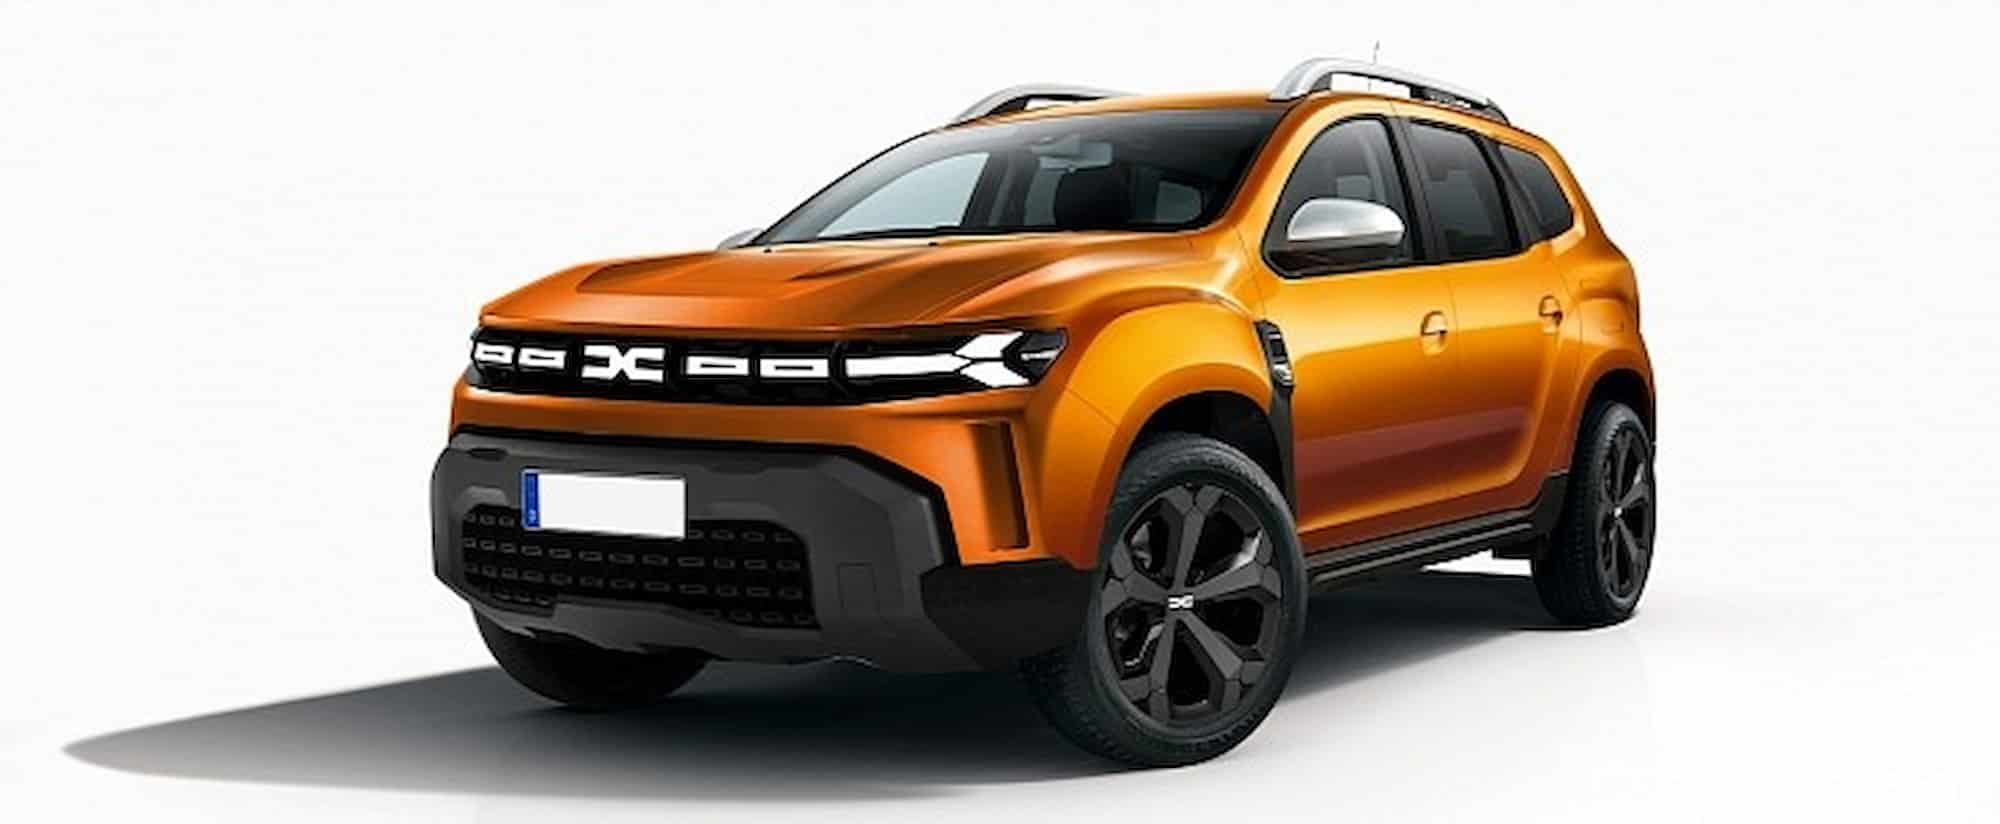 2024 dacia duster rendered with bigster concept design influences 163835 7